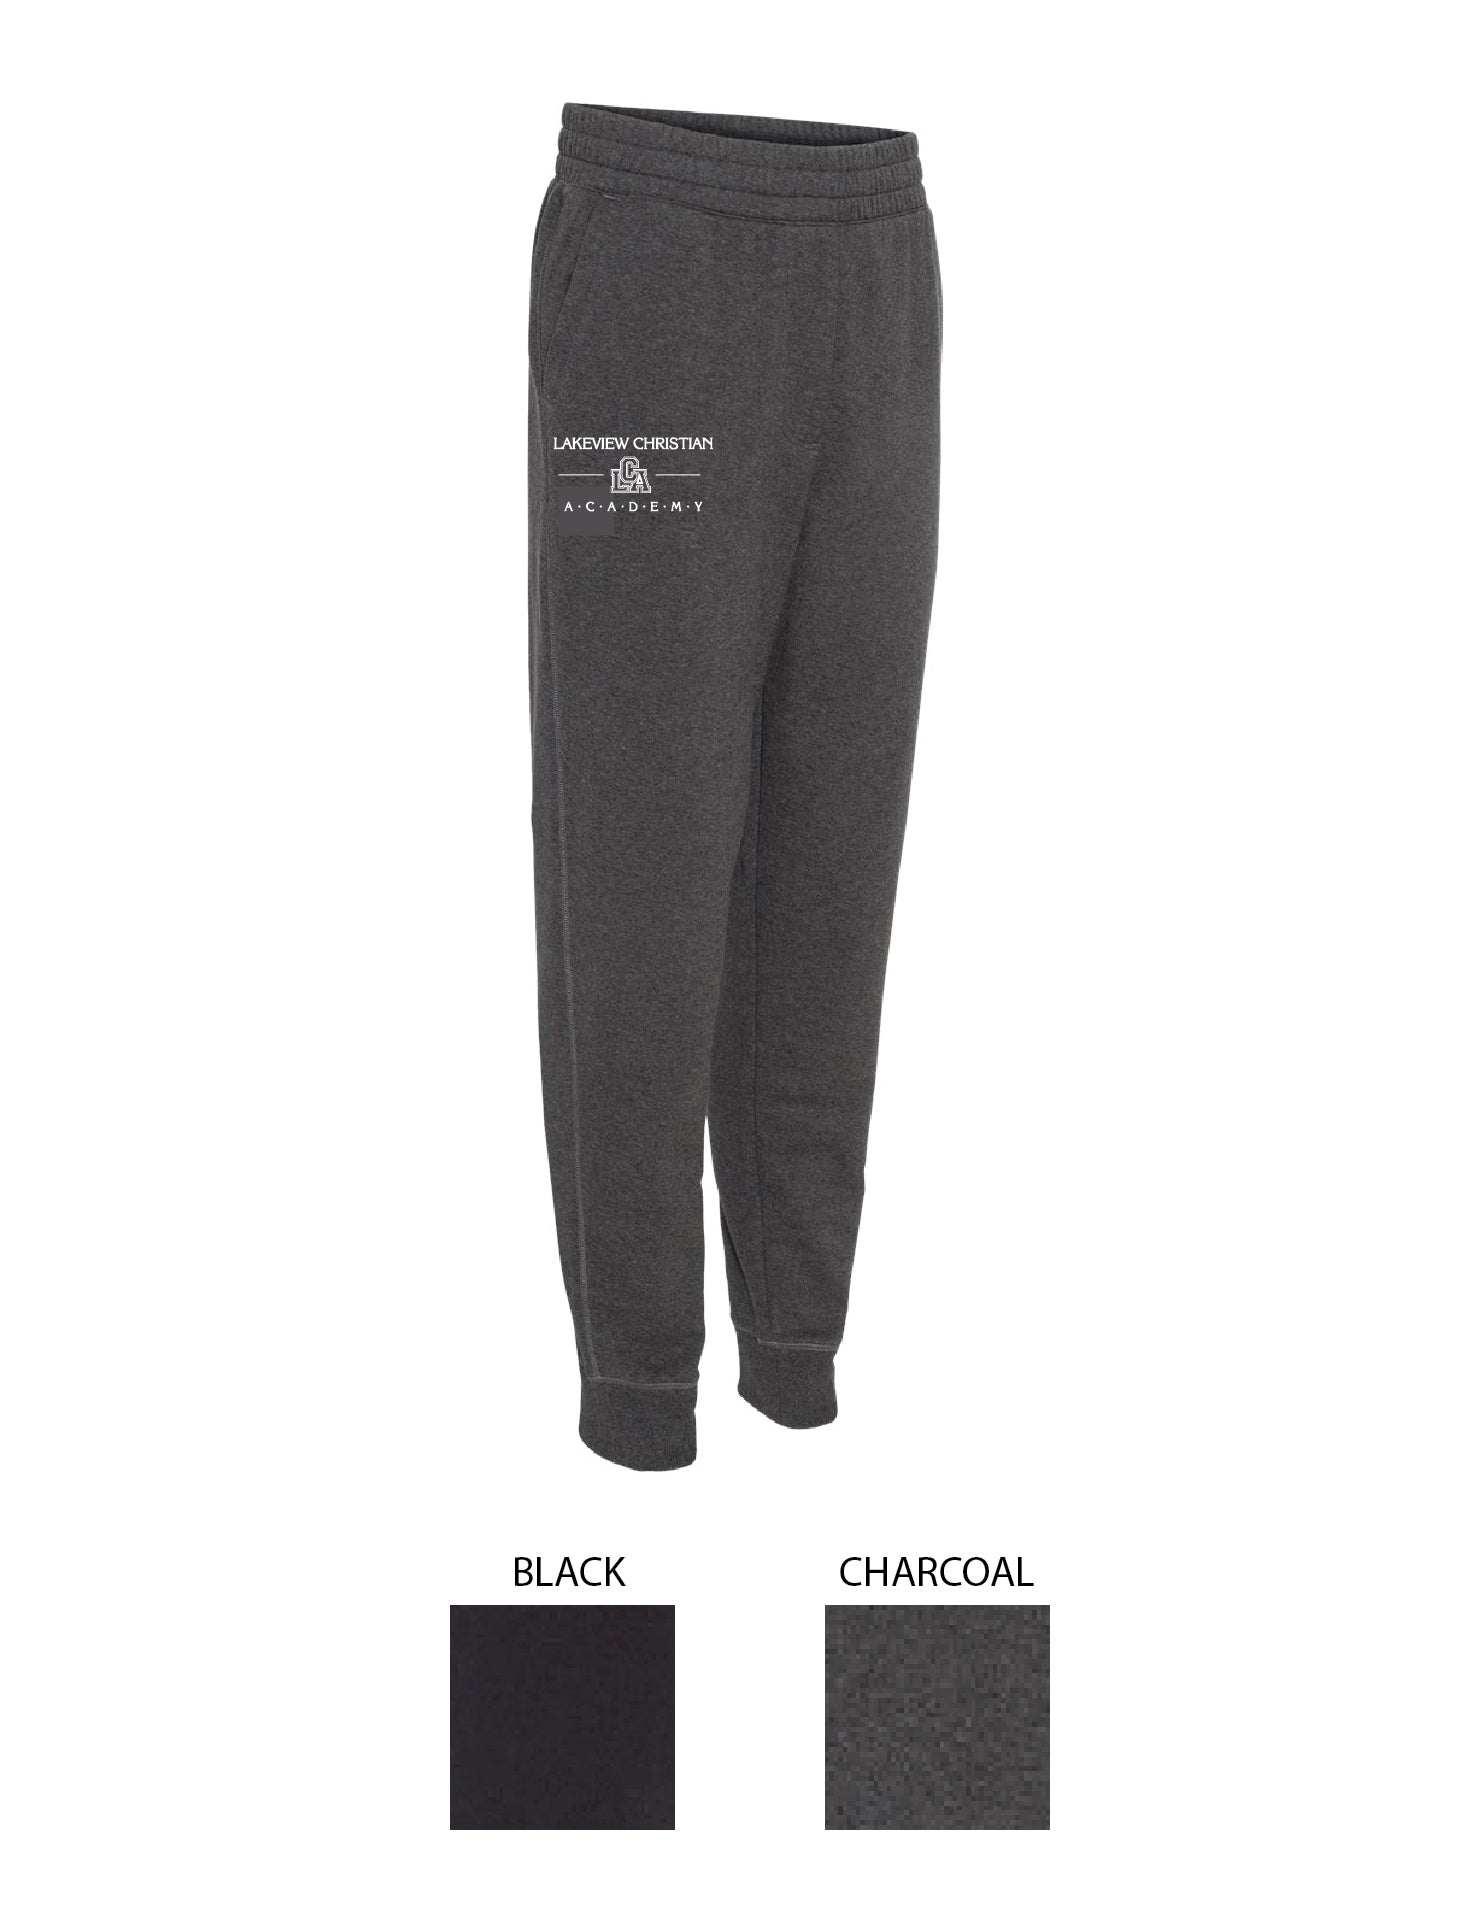 P ) MENS CHAMPION FLEECE JOGGERS